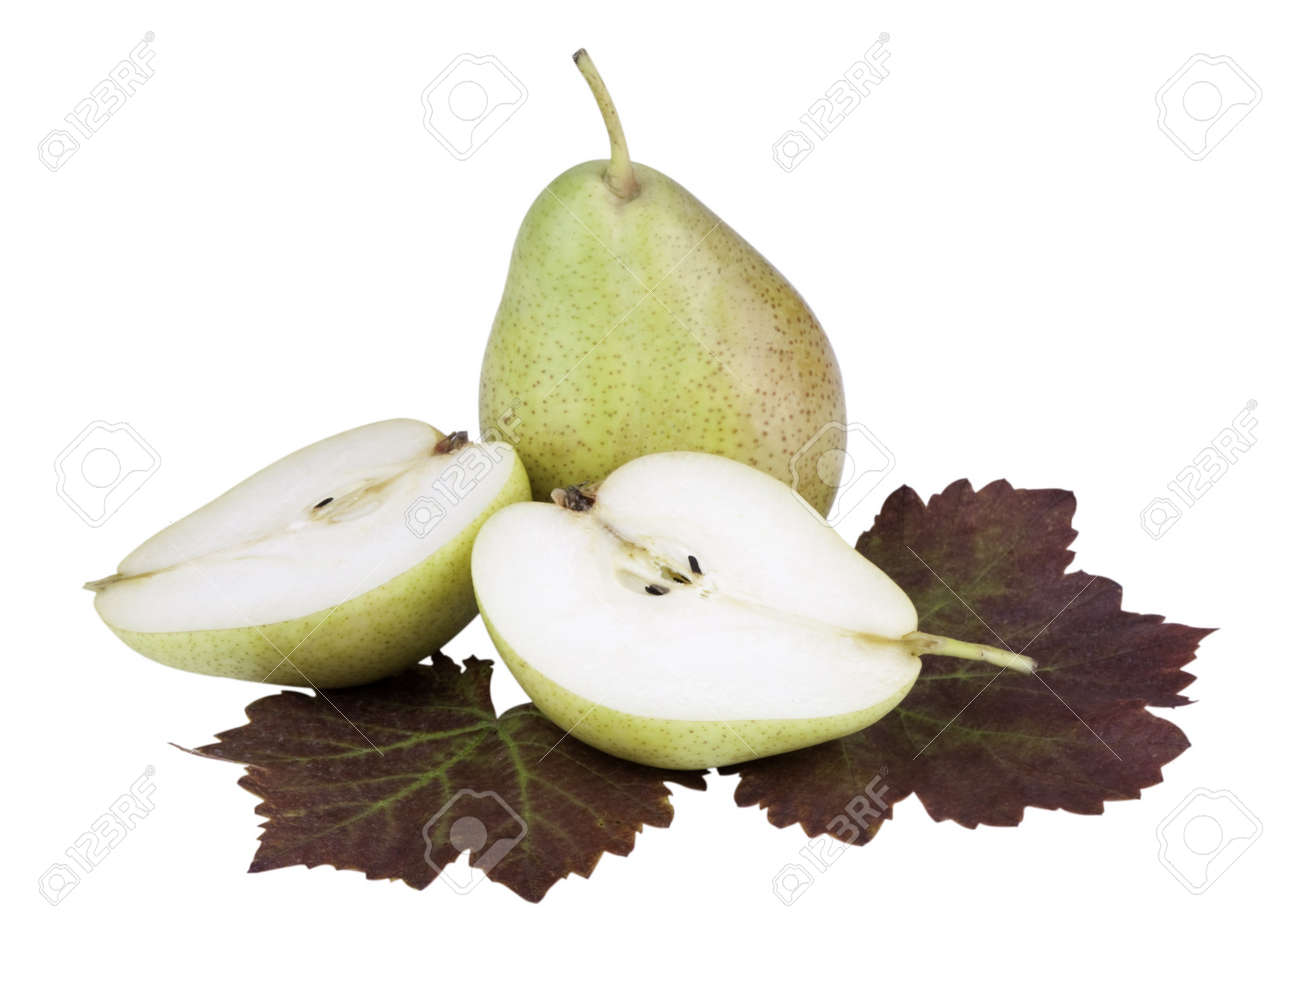 Pears and leaves in front of white background Stock Photo - 7842354